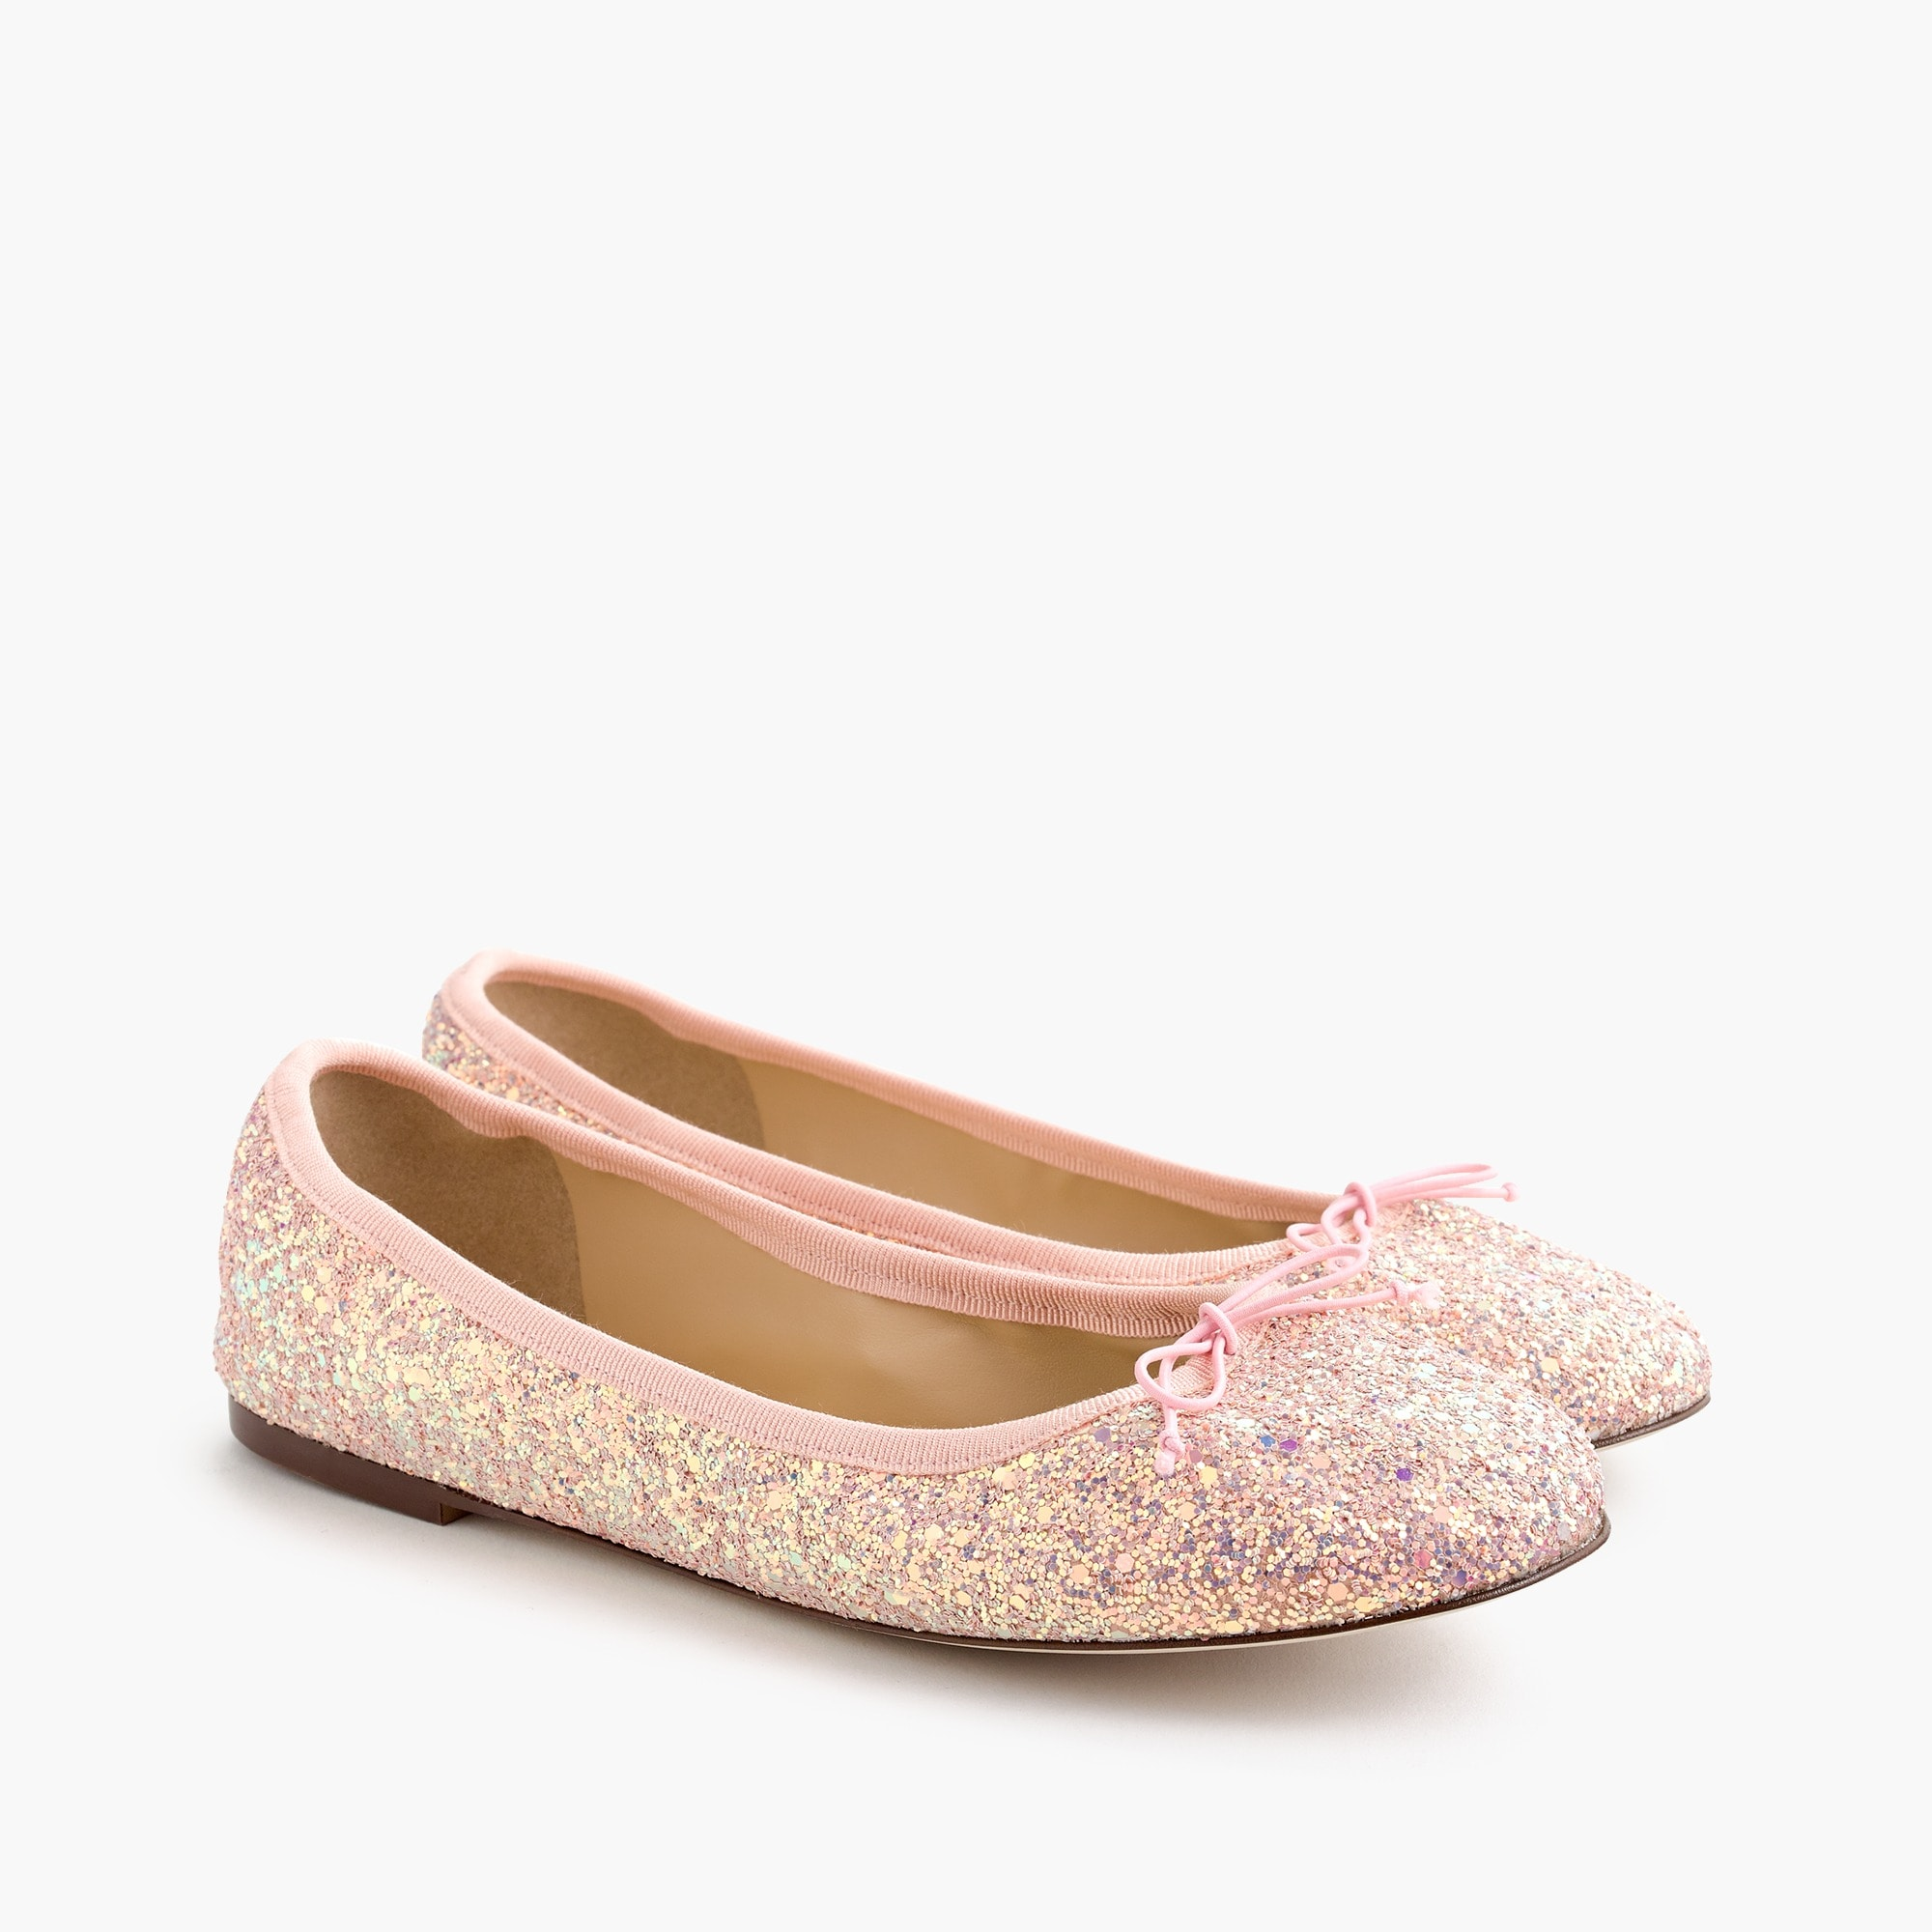 Image 1 for Evie ballet flats in glitter